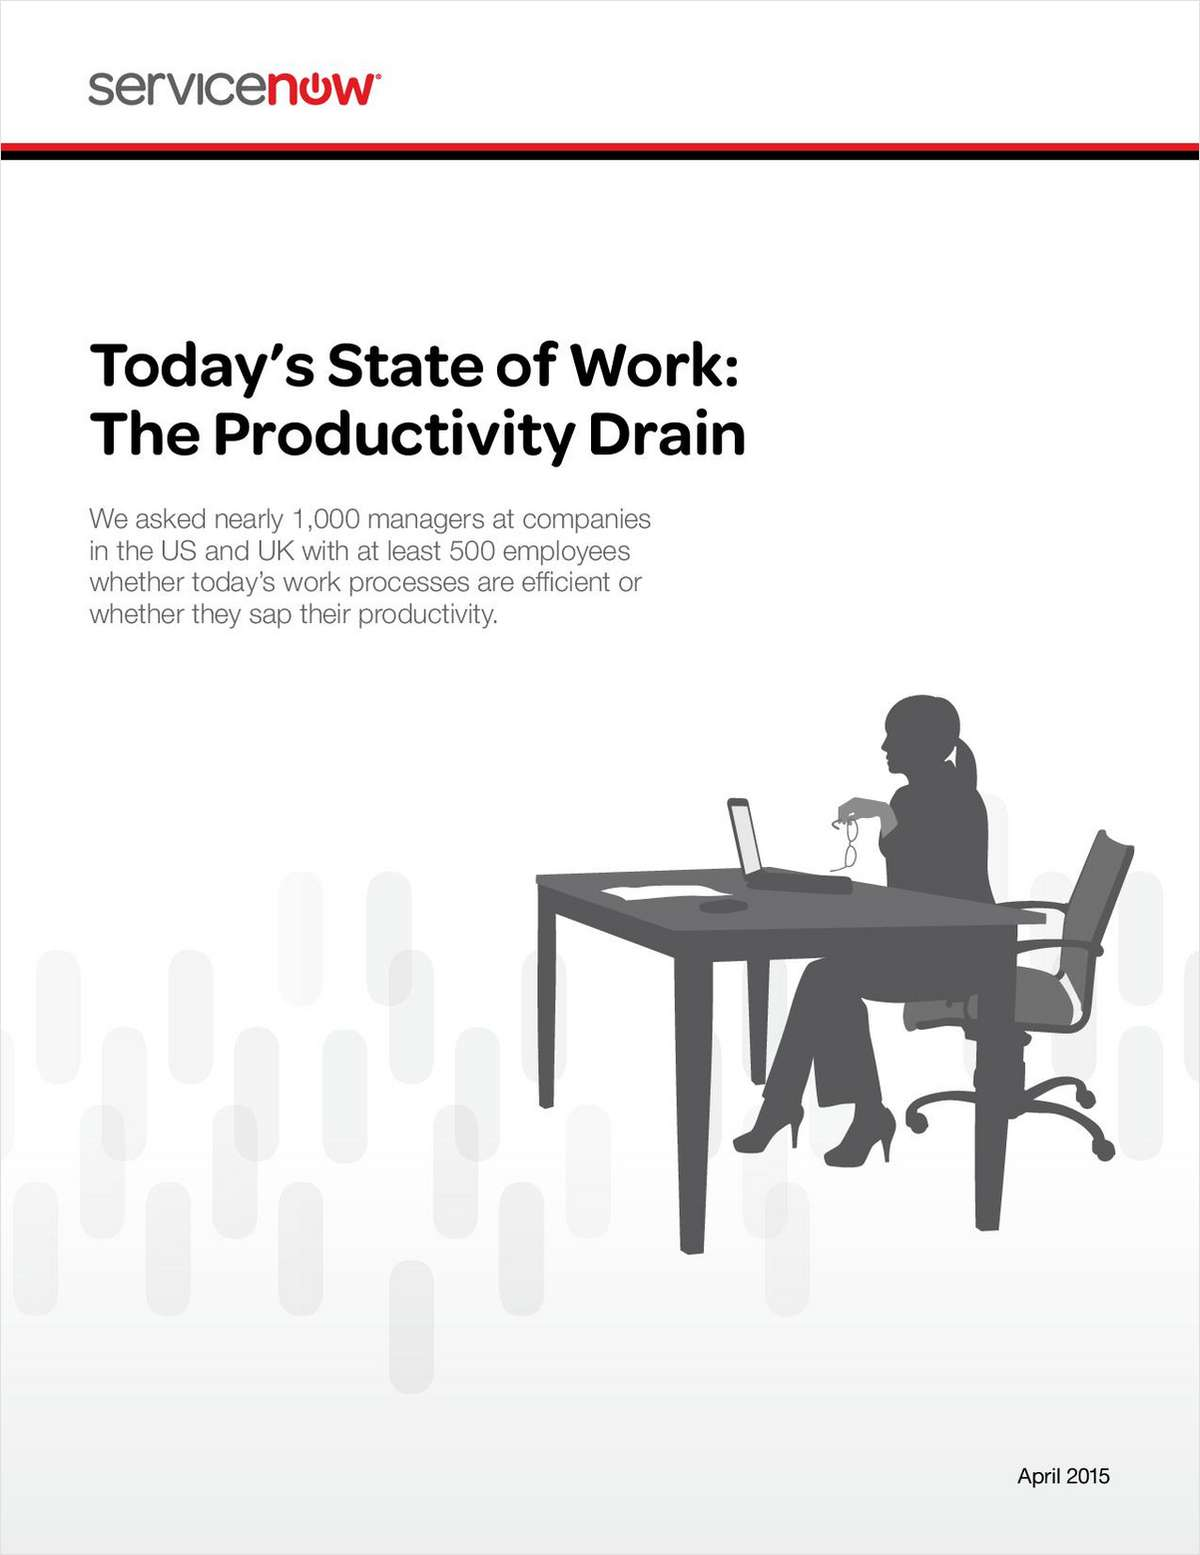 Today's State of Work: The Productivity Drain